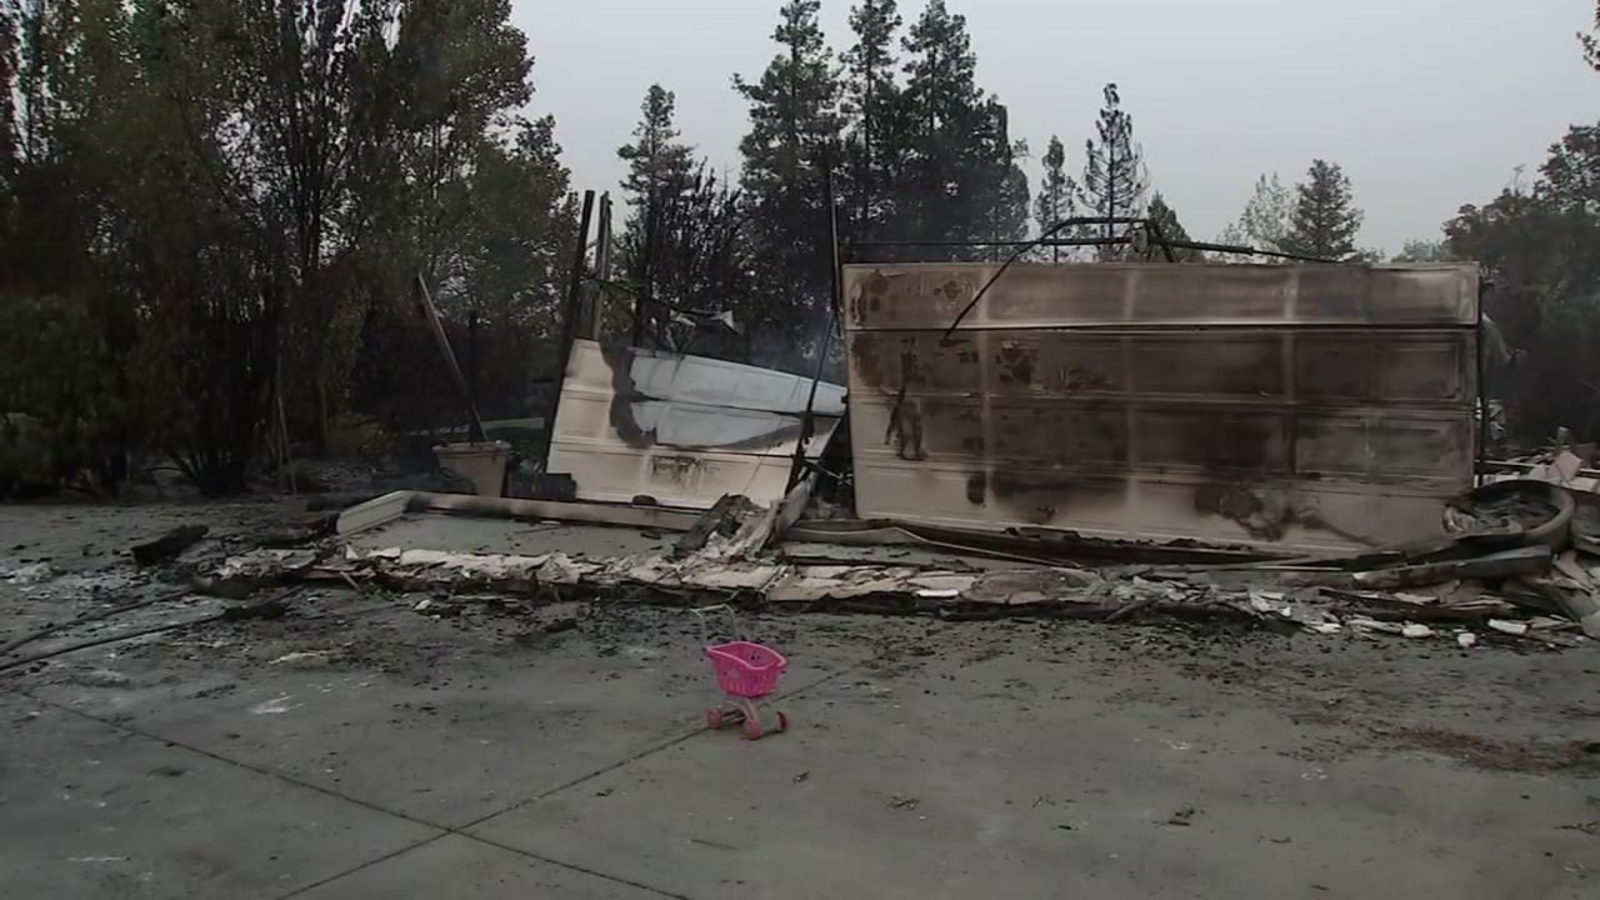 'We're devastated': Vacaville family who fled wildfire returns to find 'forever home' destroyed